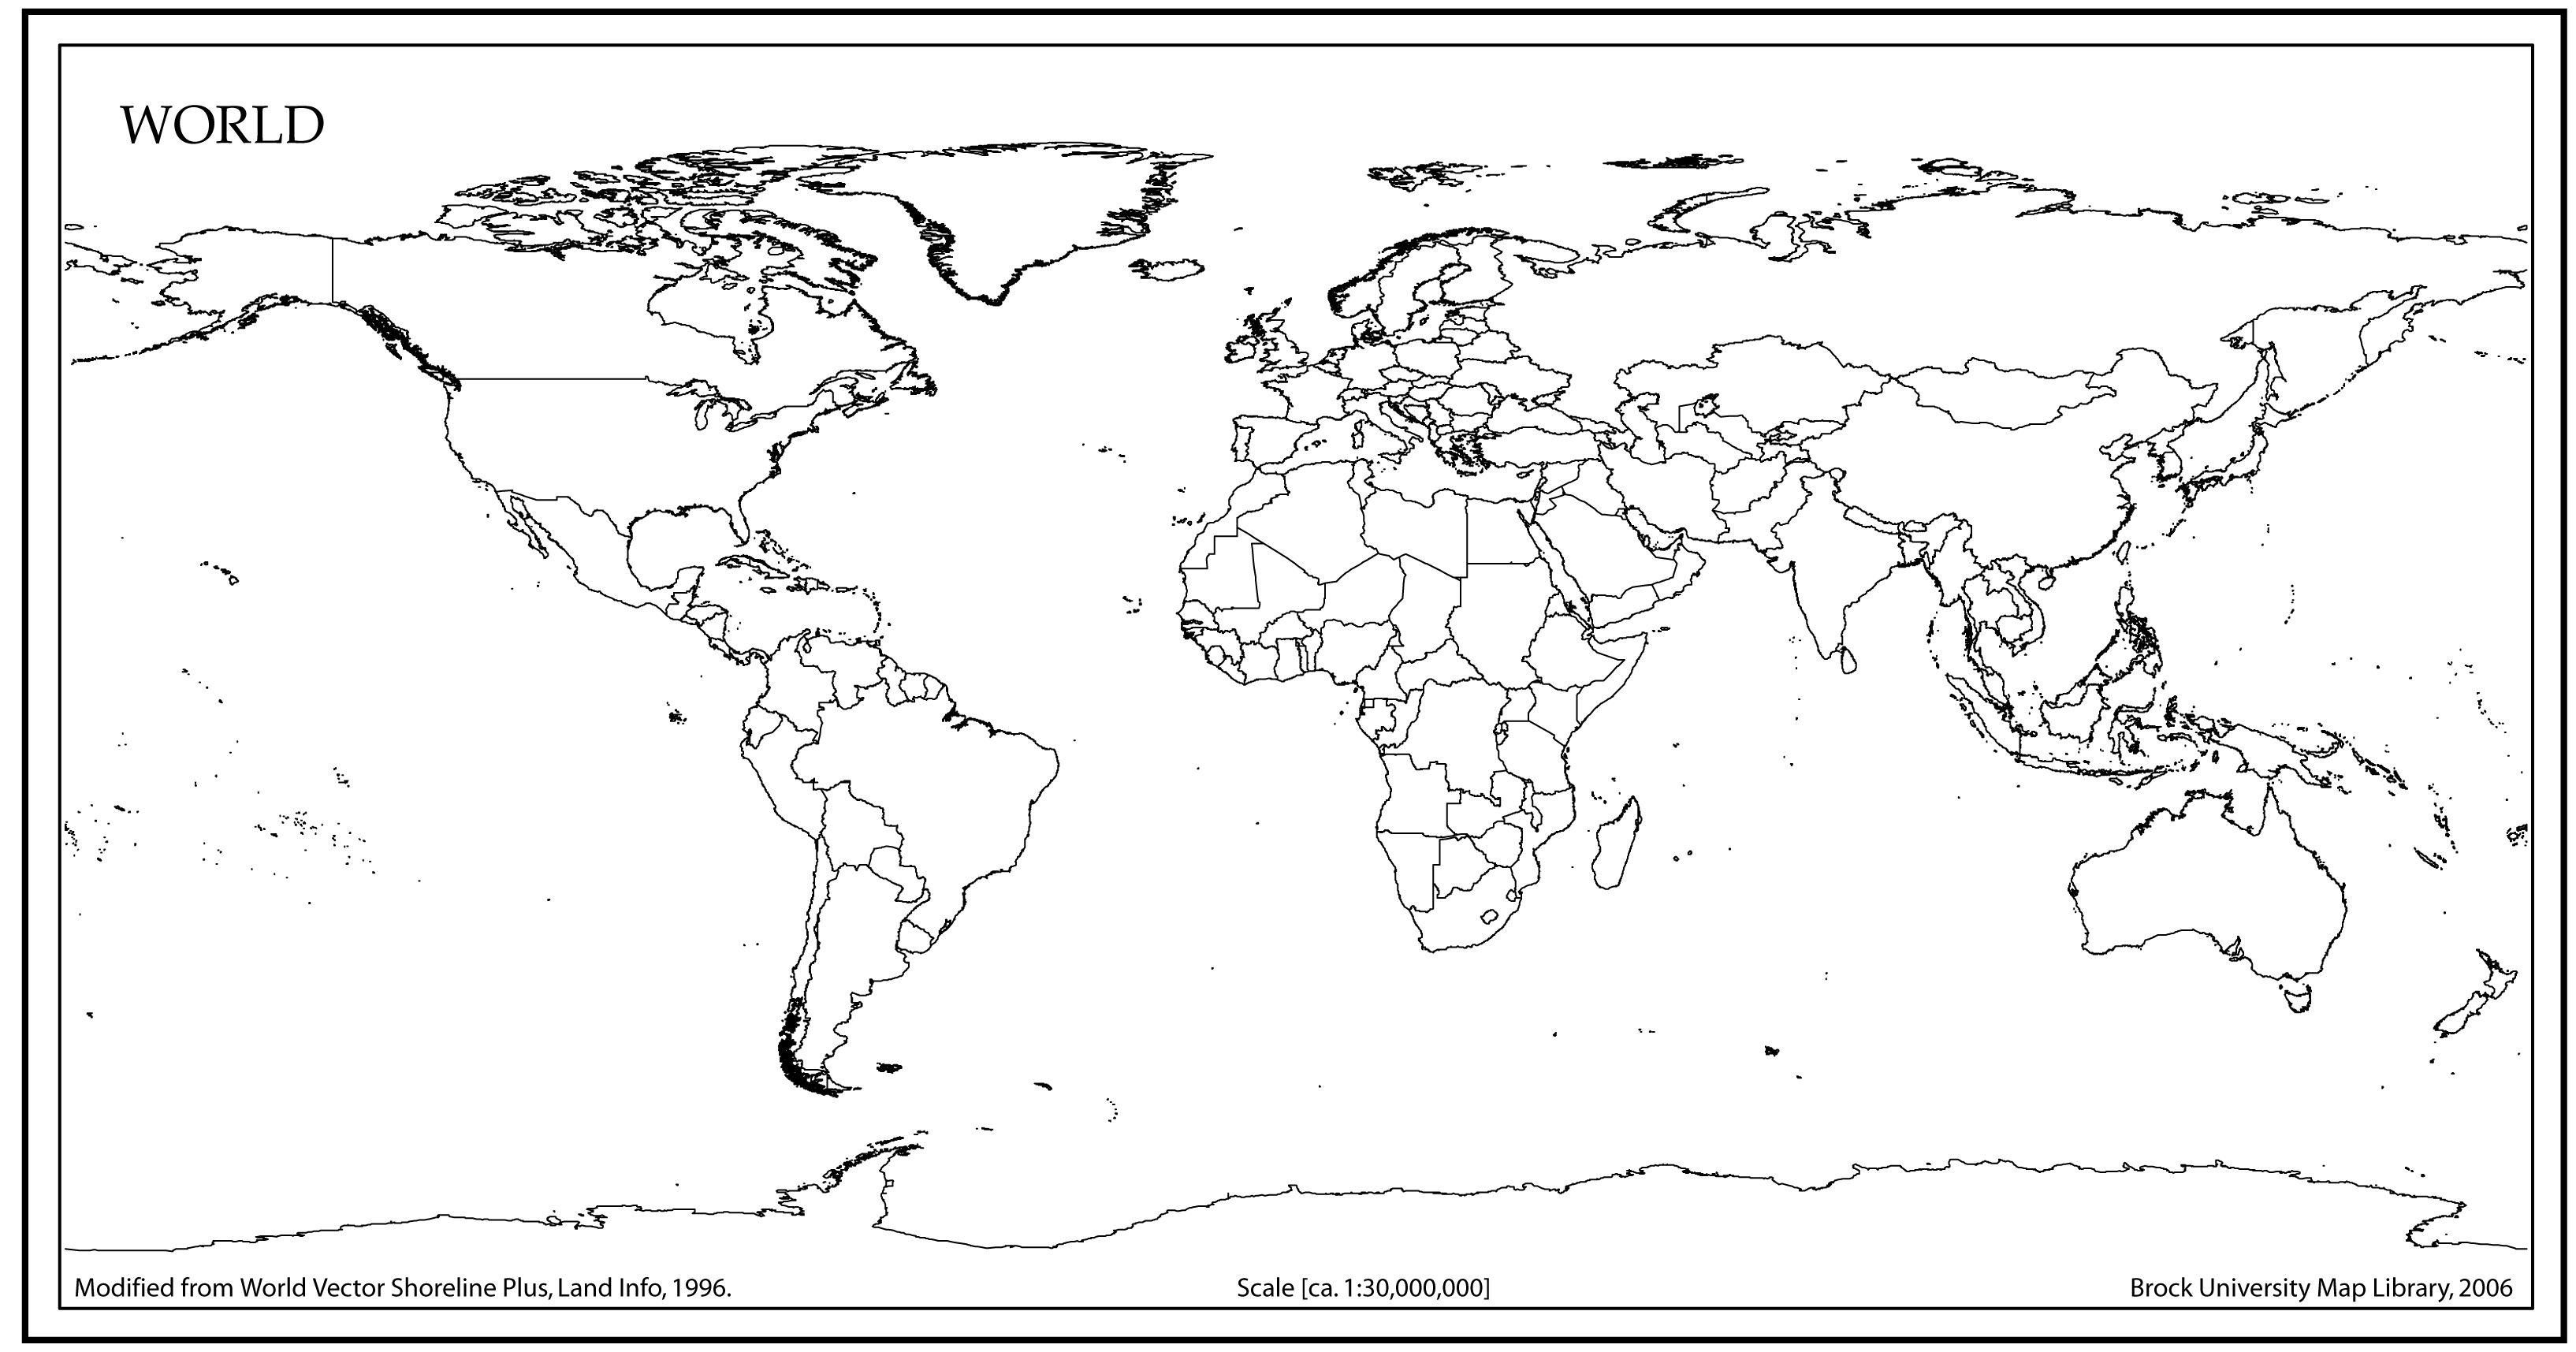 World Map Outline with Countries | World map | World map outline ...